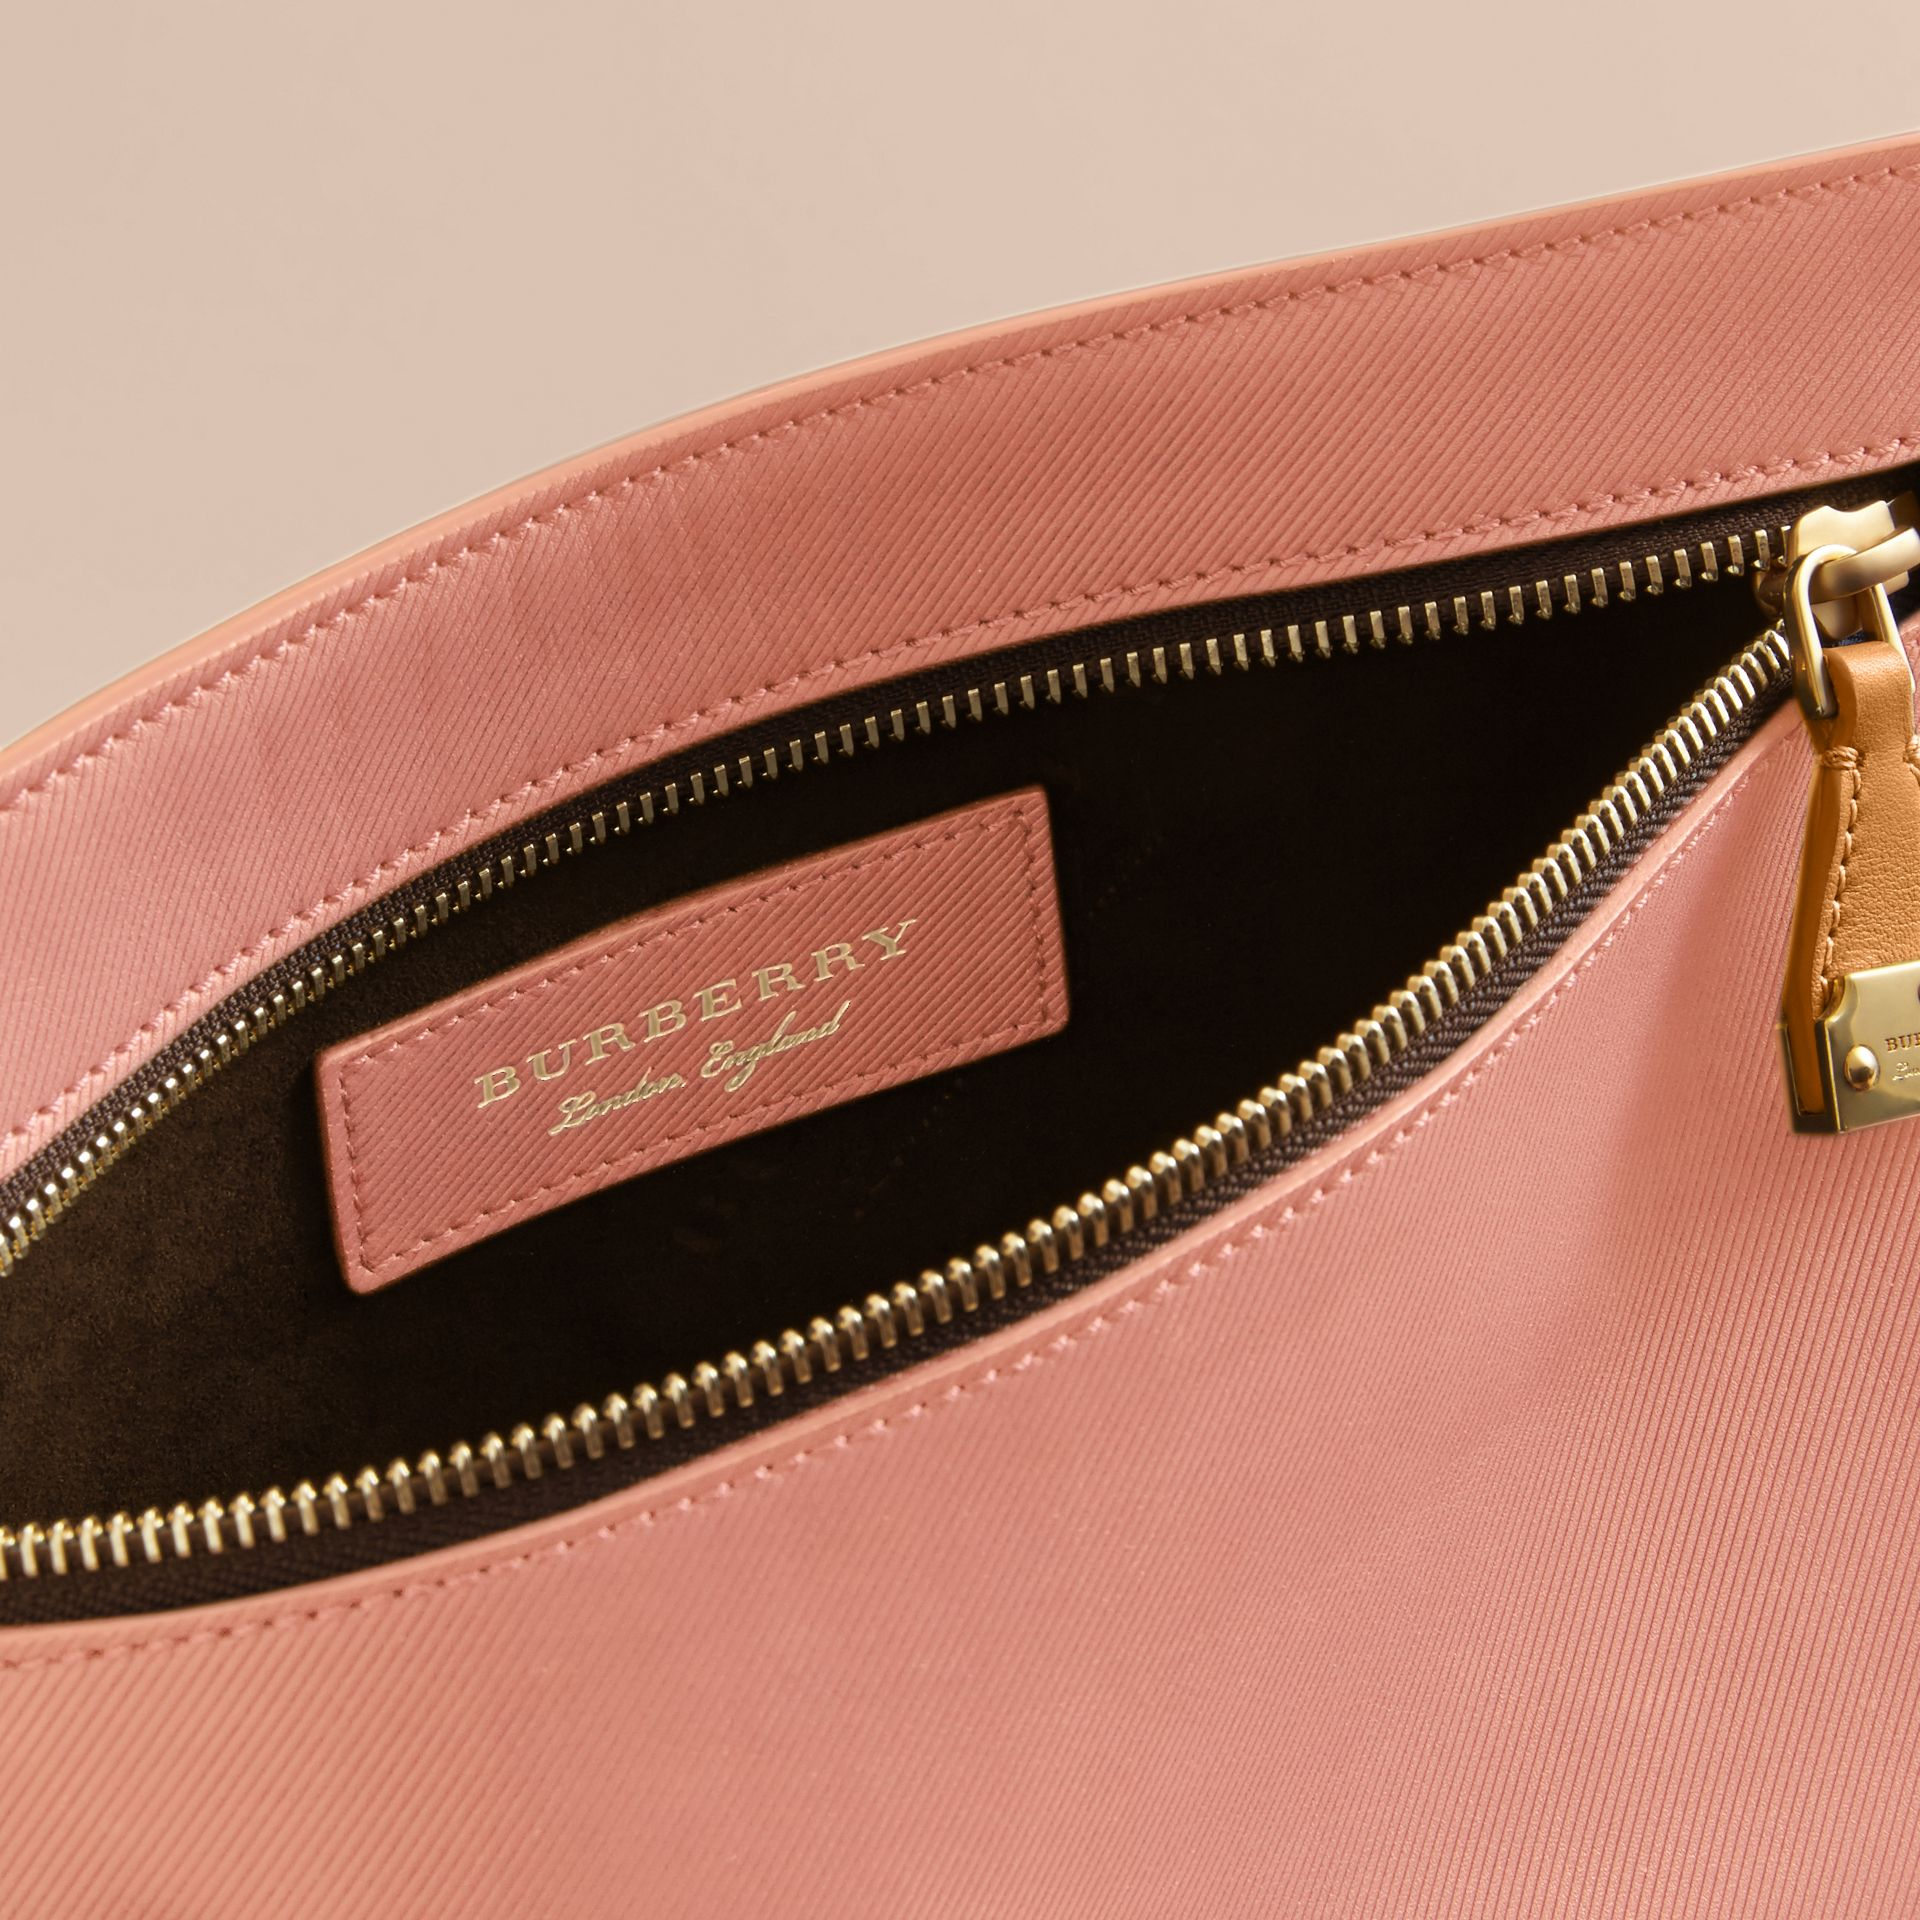 Two-tone Trench Leather Wristlet Pouch Ash Rose/pale Clementine - gallery image 5